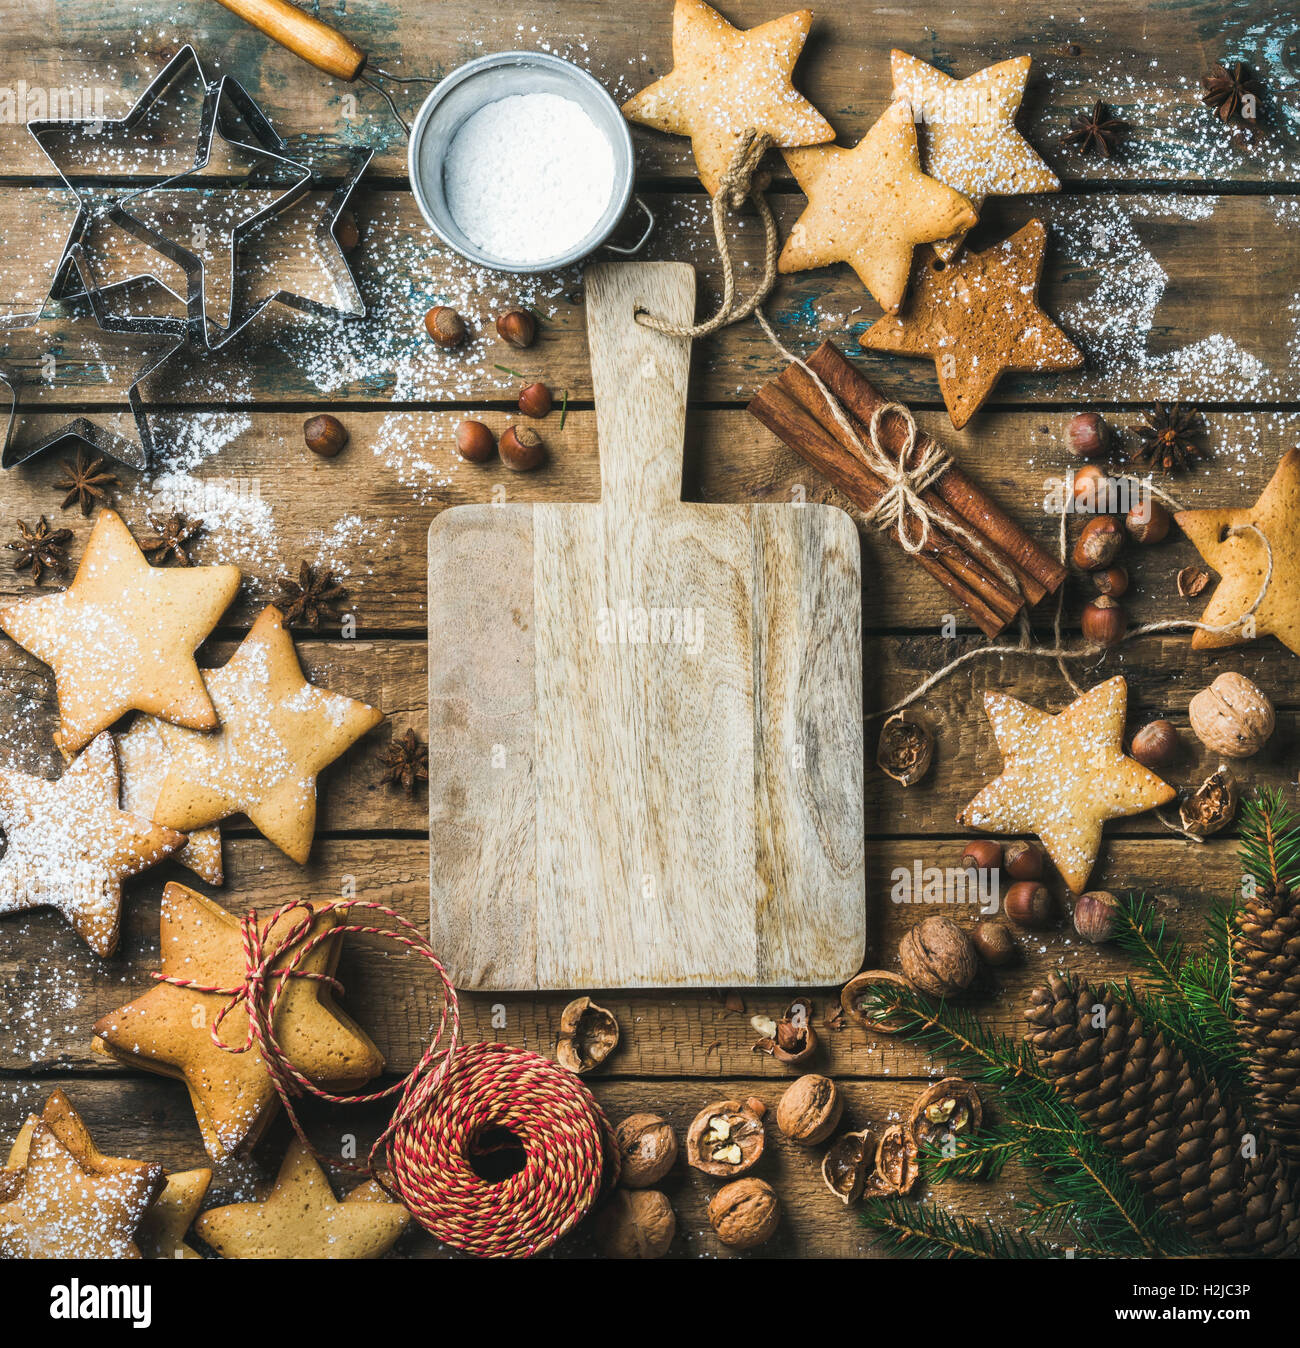 Christmas, New Year background with serving wooden board in center - Stock Image